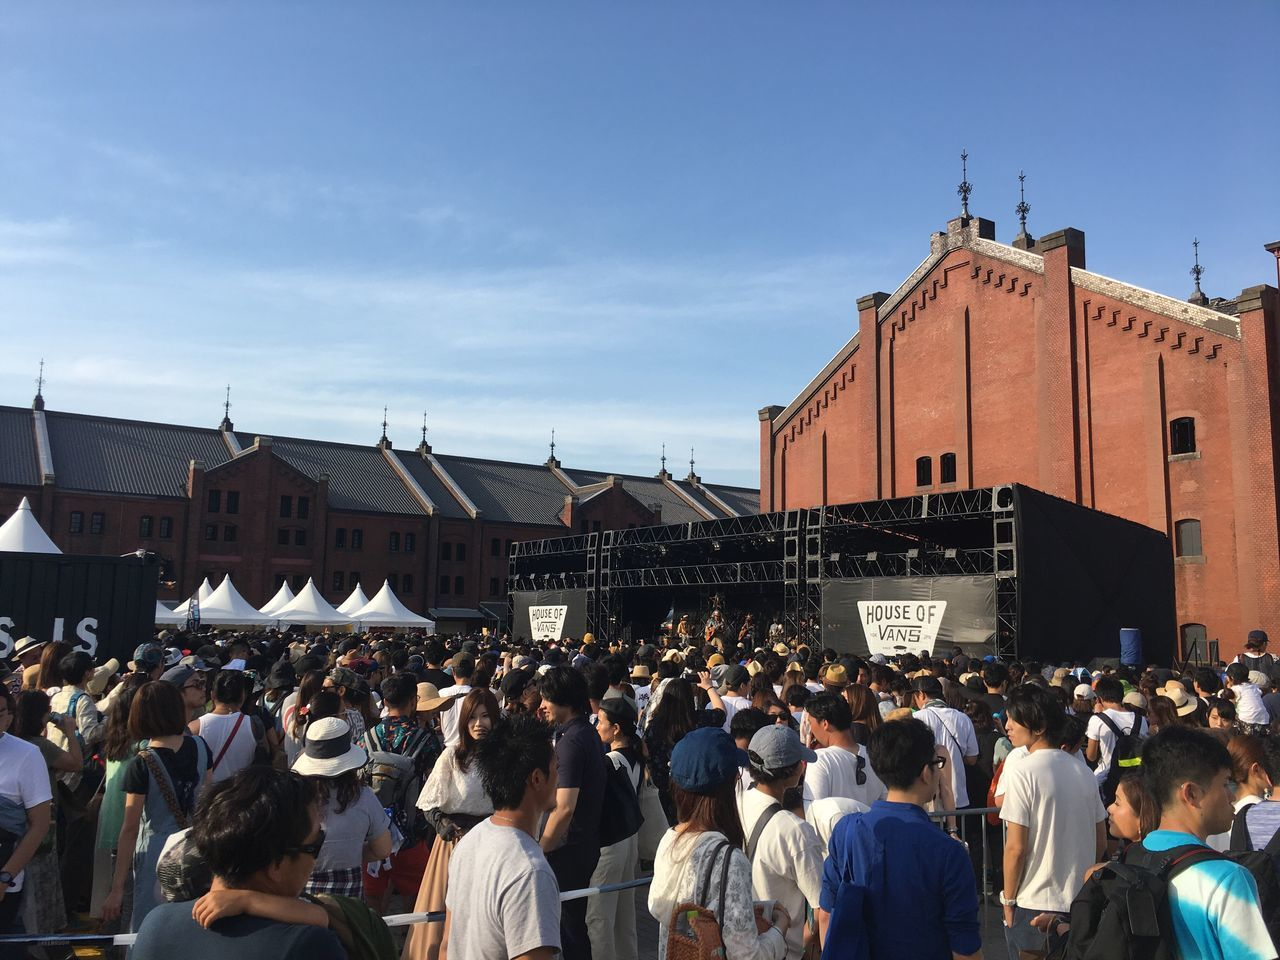 Crowd Large Group Of People Built Structure Men Women Architecture Building Exterior Real People Lifestyles Day Outdoors Protestor Sky City Popular Music Concert People Adult